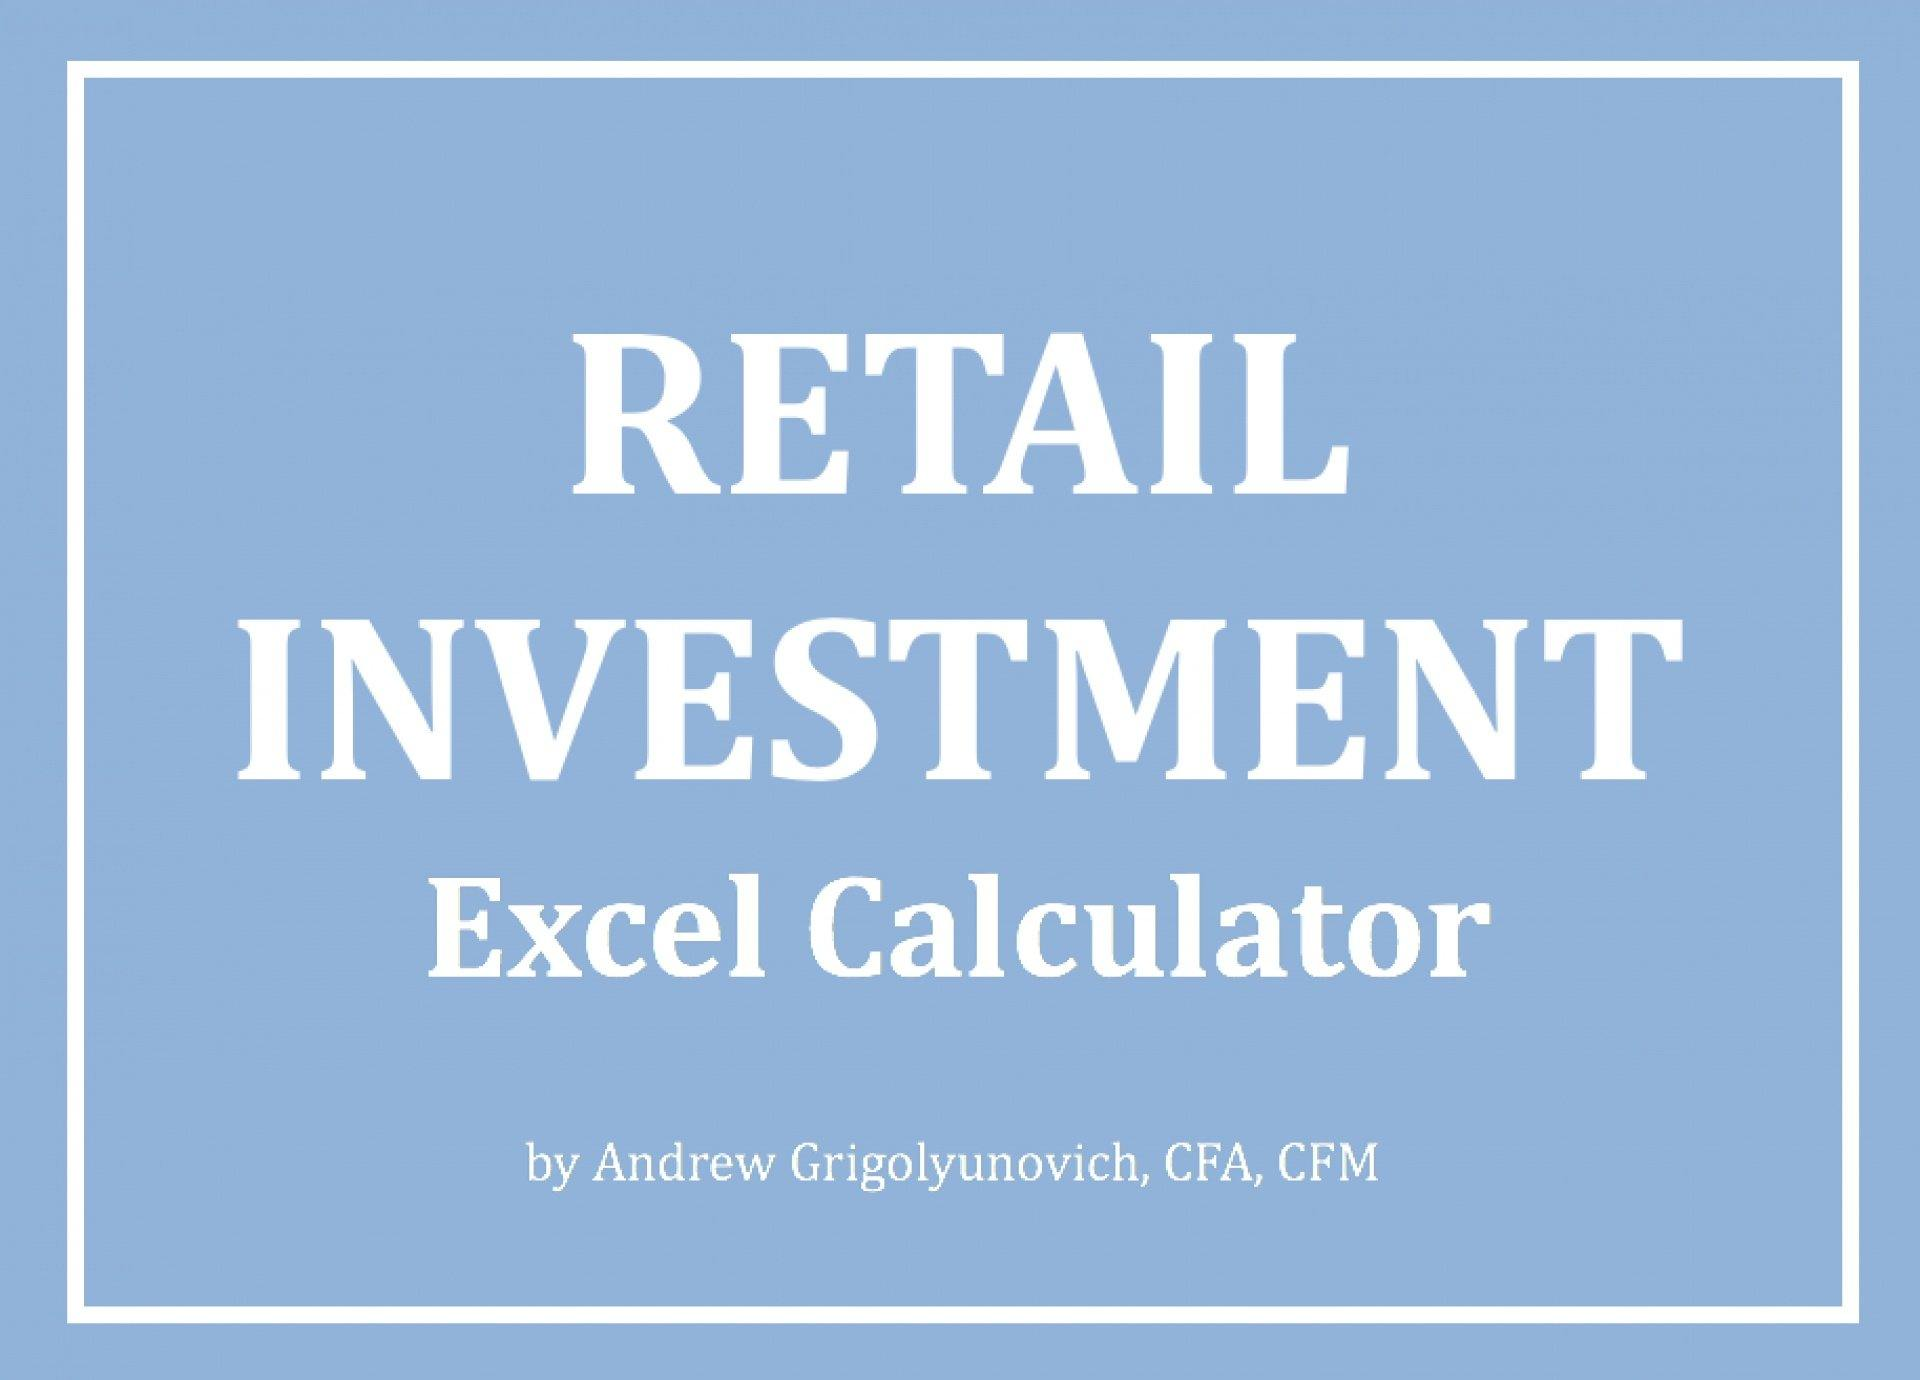 Retail Investment Excel Calculator - Templarket -  Business Templates Marketplace